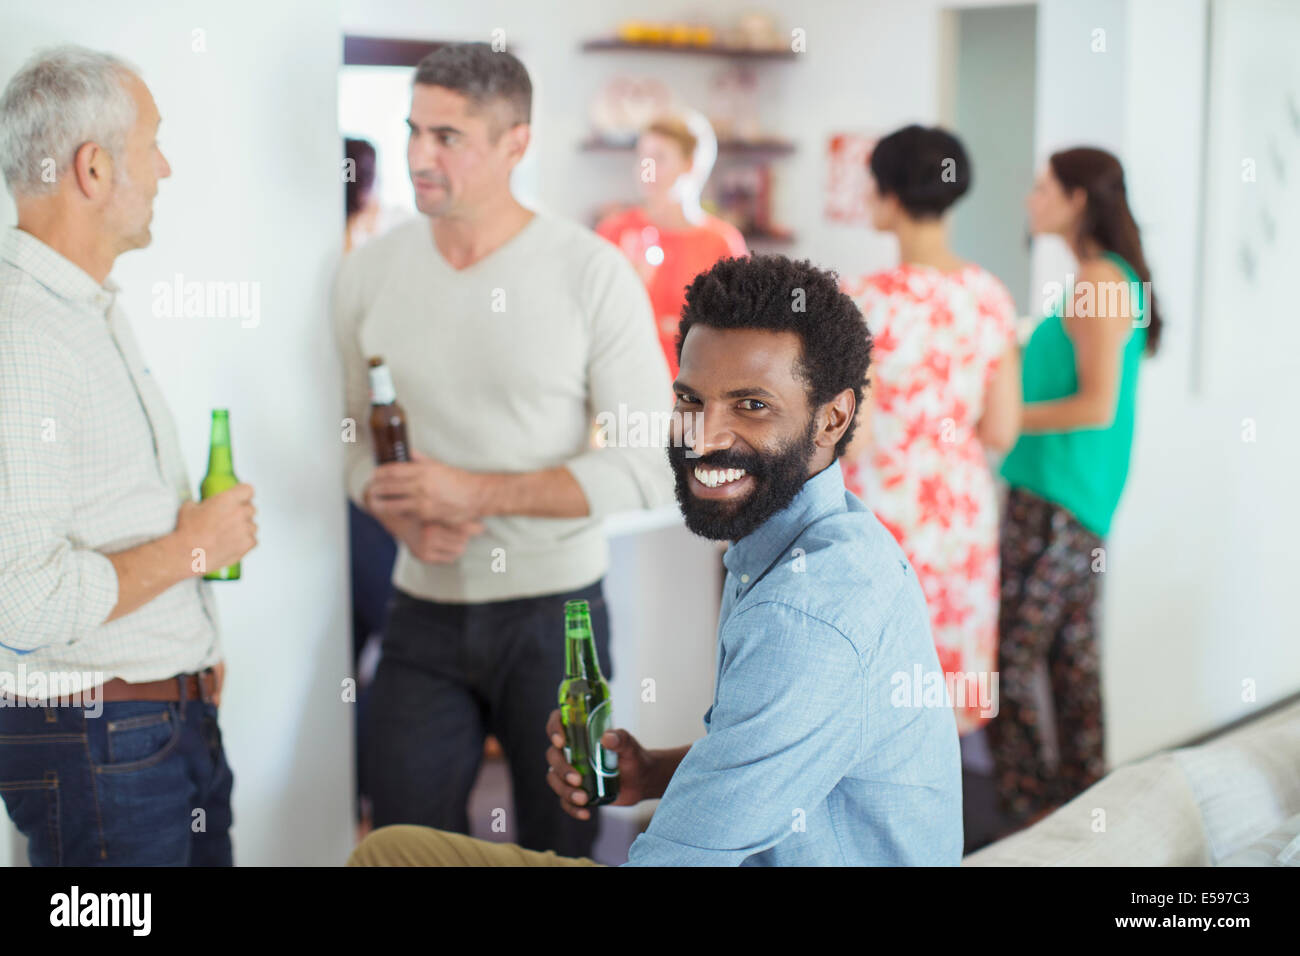 Man smiling at party Photo Stock